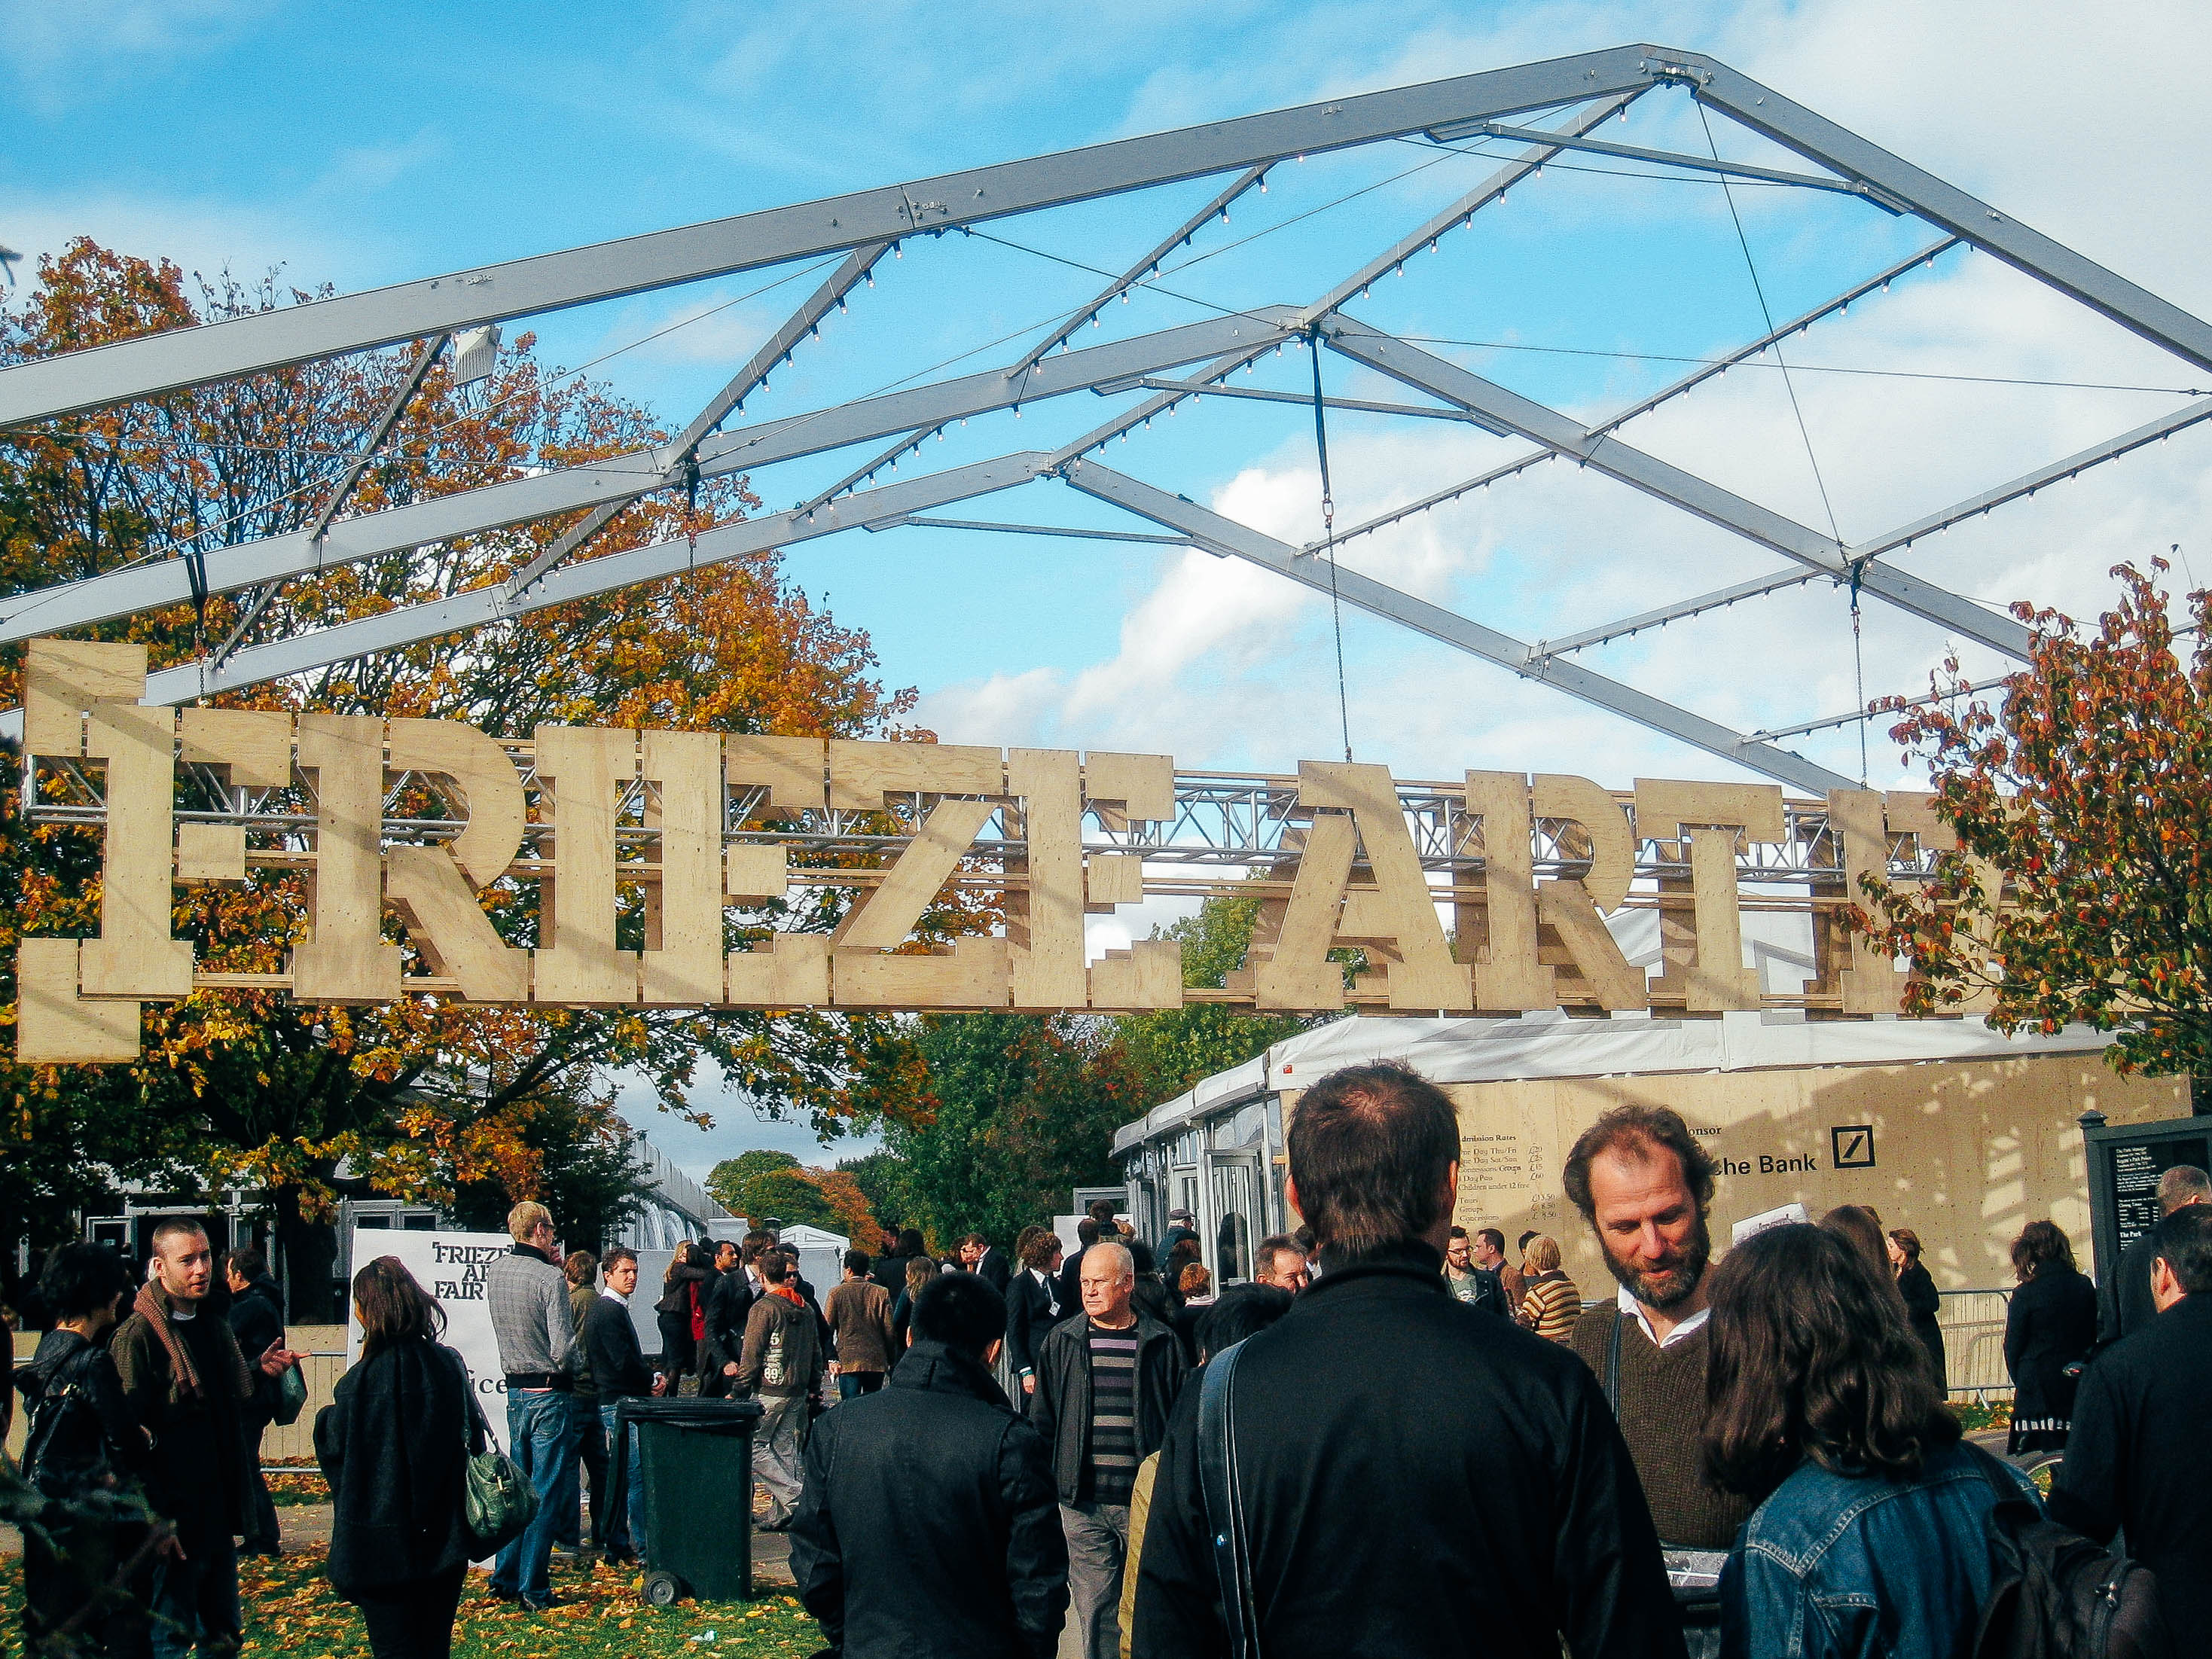 Frieze Art Fair on Randall's Island